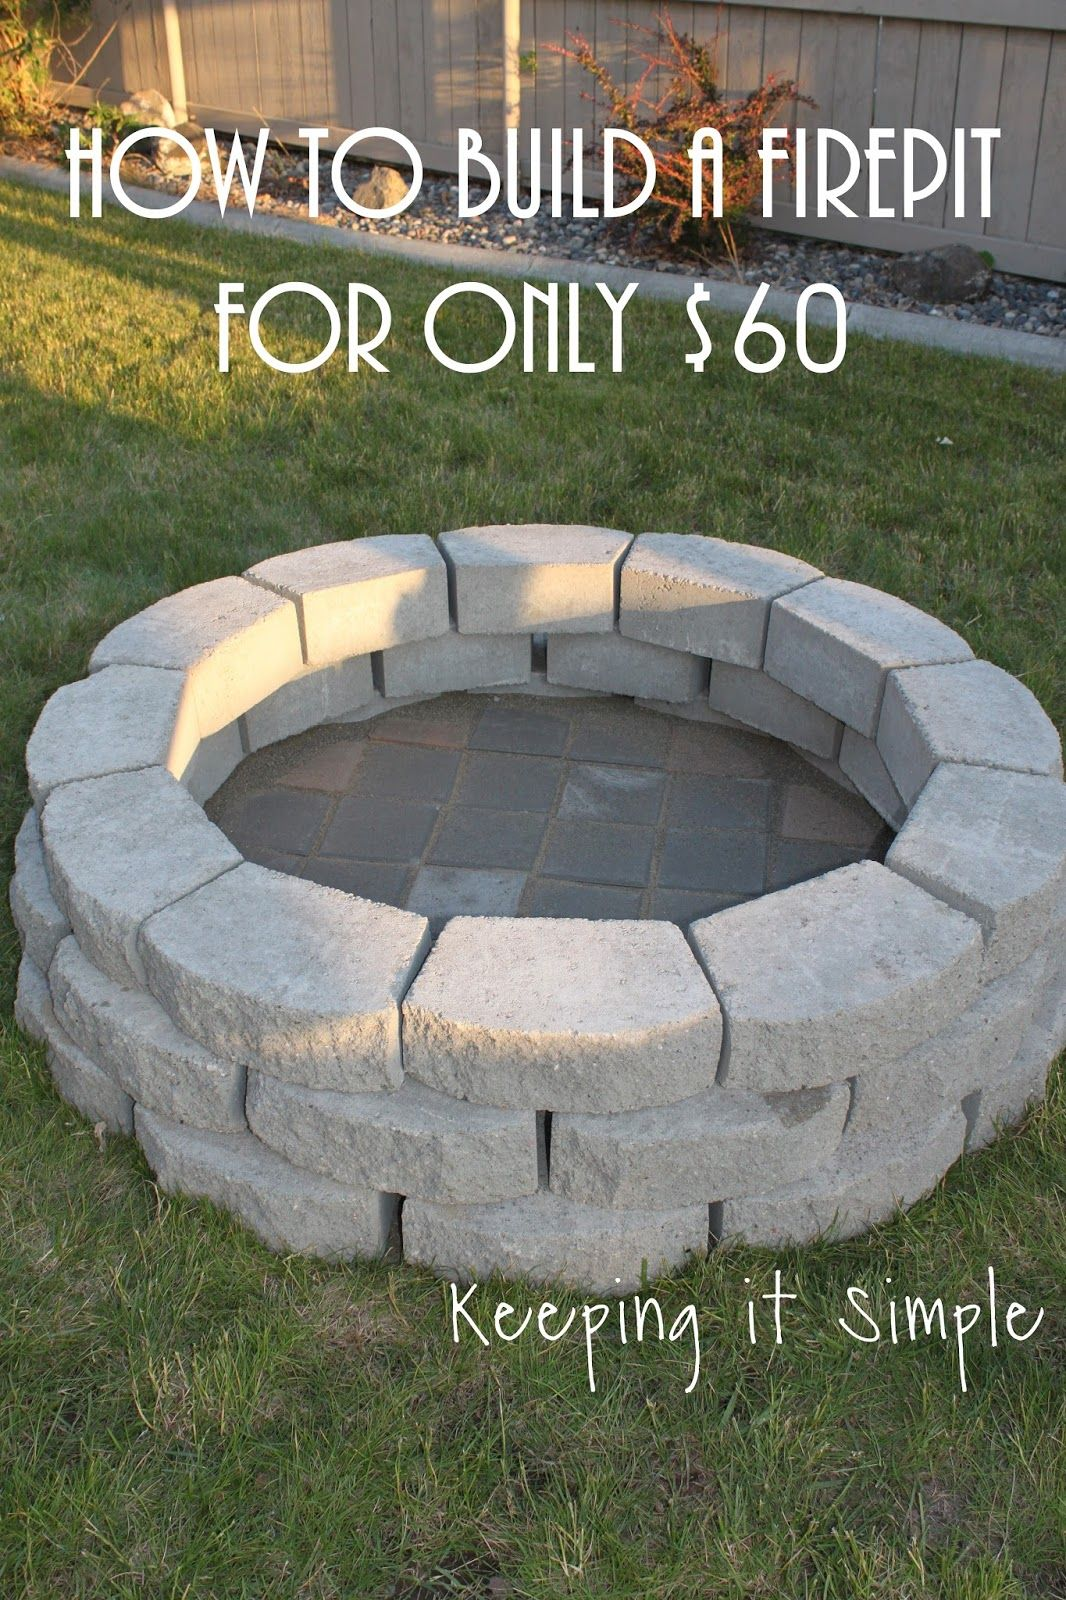 Exceptional Keeping It Simple: How To Build A DIY Fire Pit For Only $60